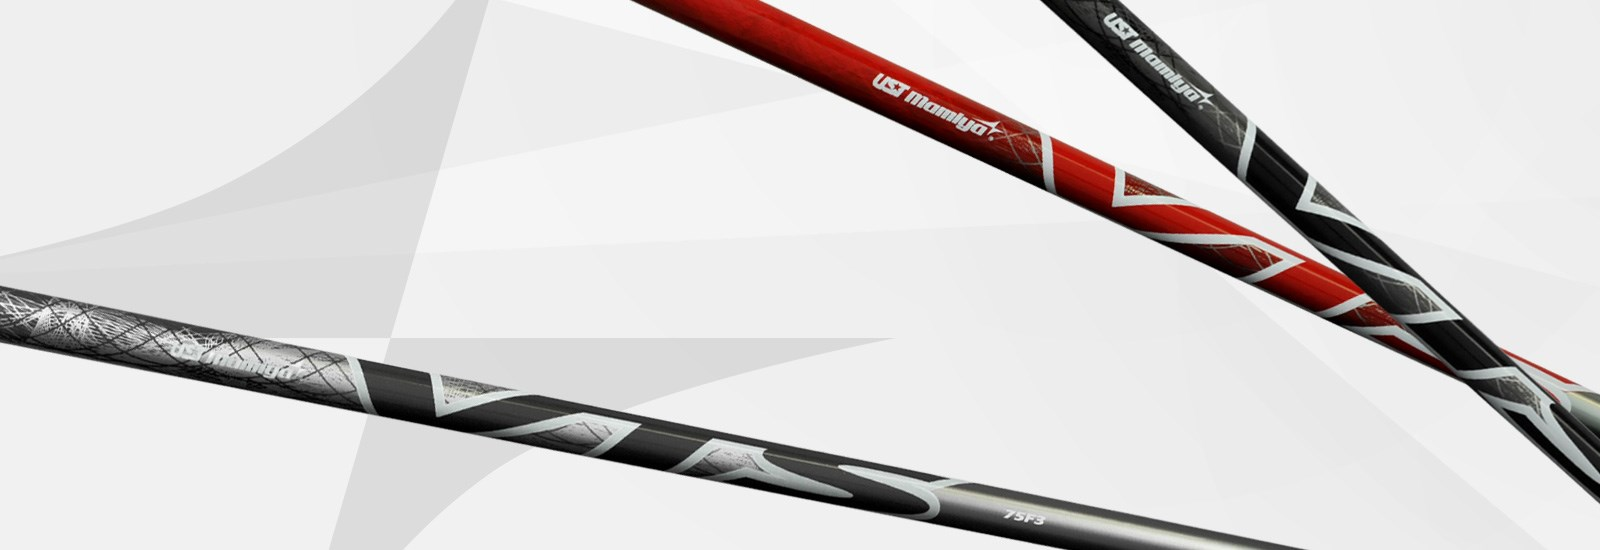 UST Mamiya VTS Golf Shafts